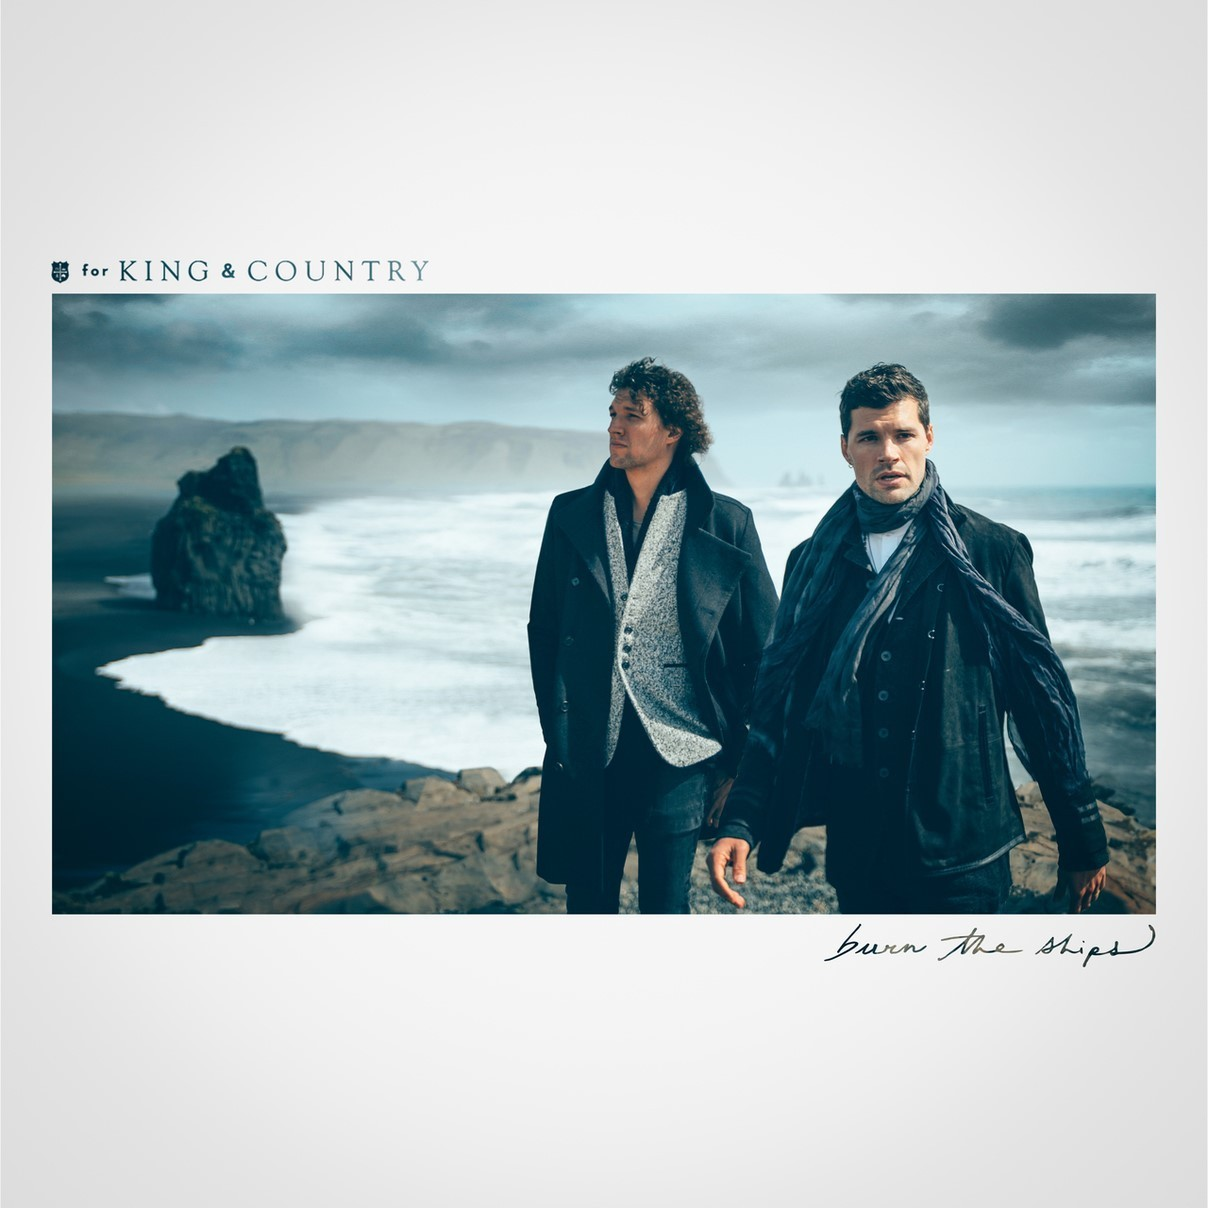 For King & Country - Burn The Ships